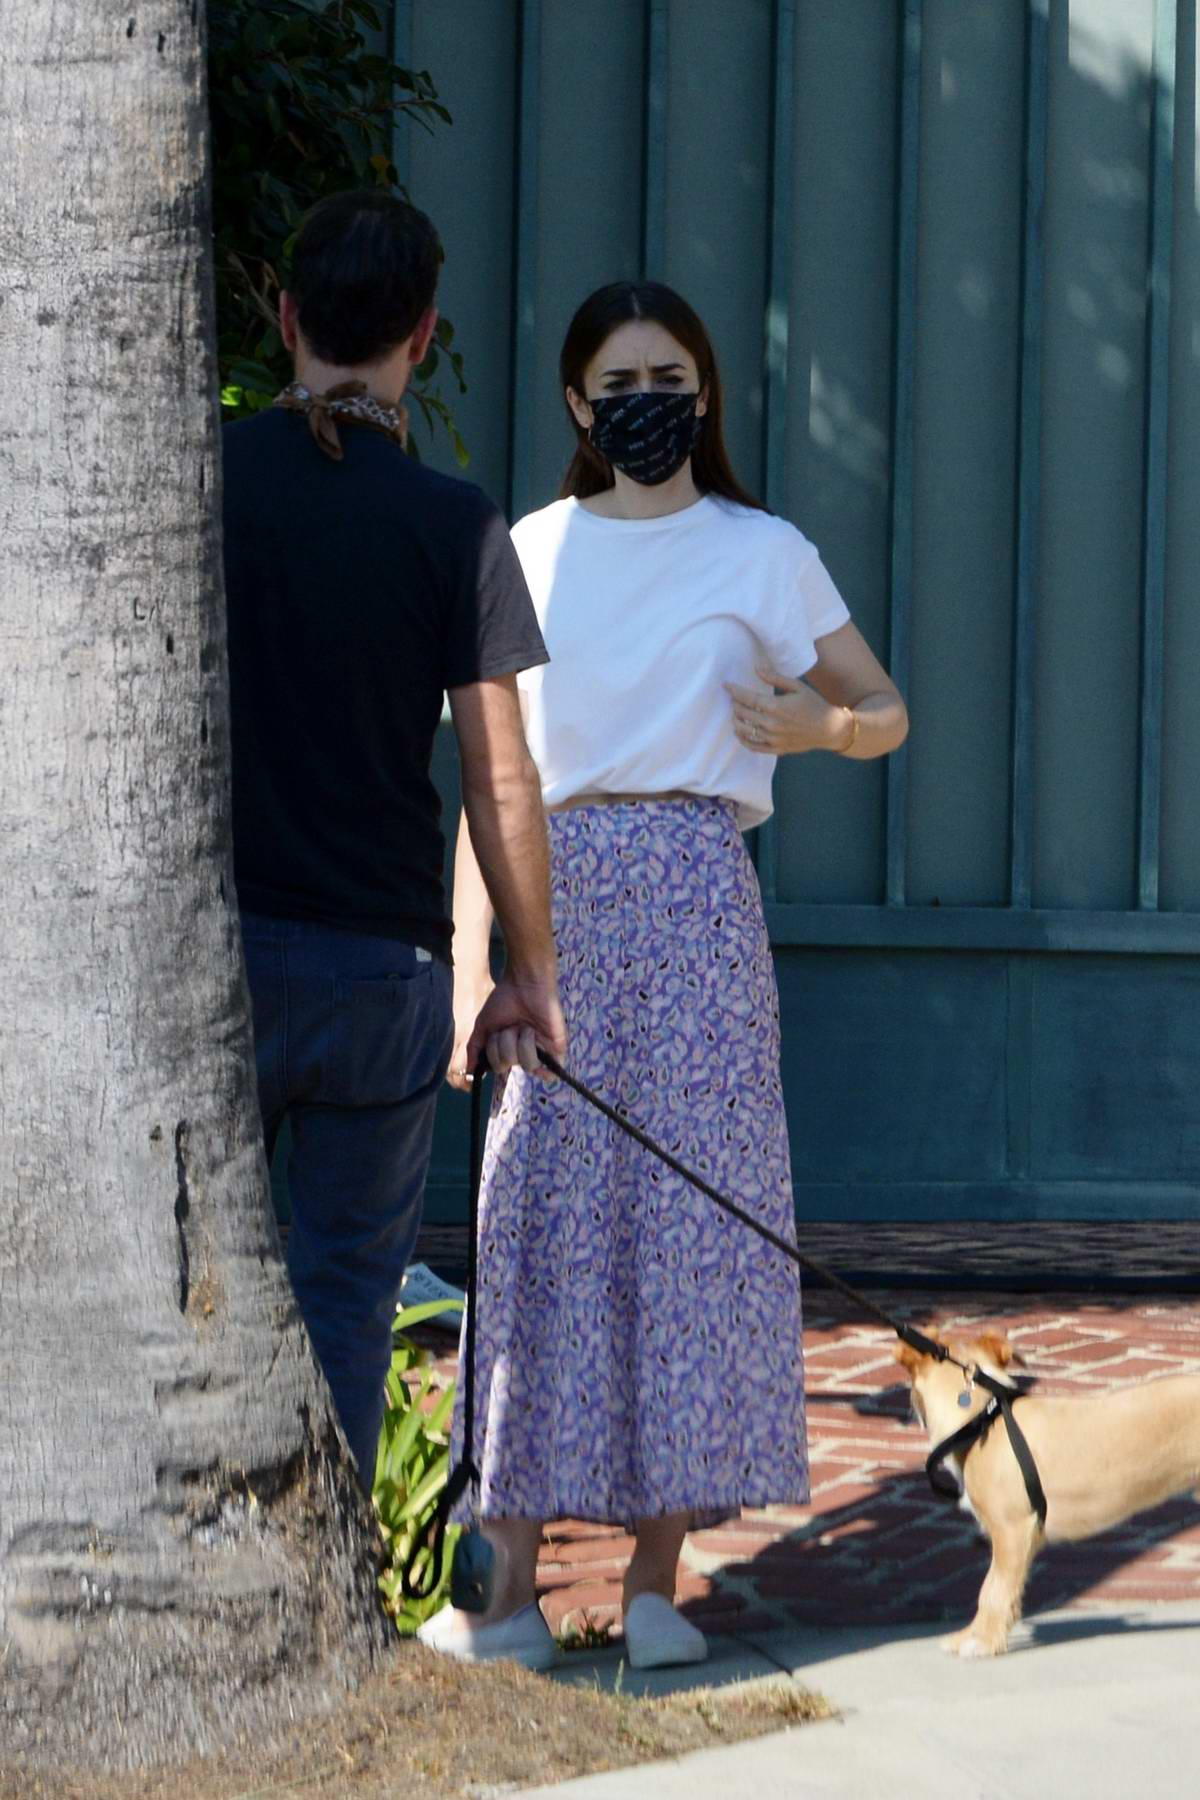 Lily Collins and Charlie McDowell step out for a morning stroll with their dog in Los Angeles